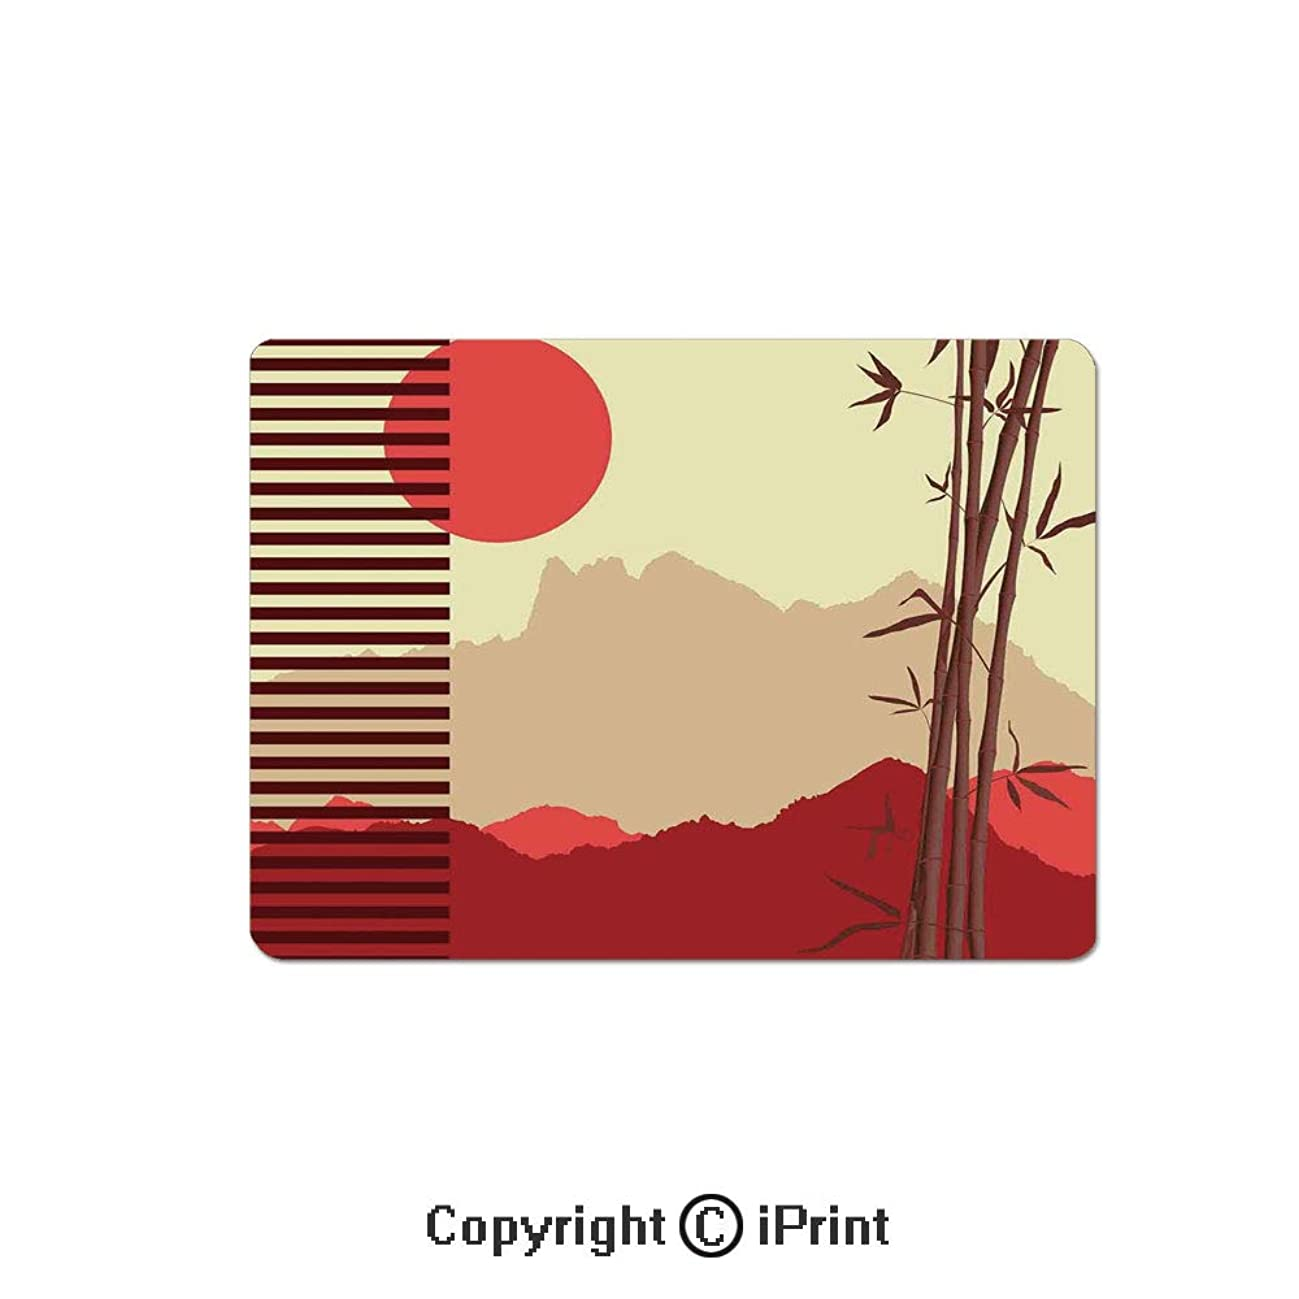 Oversized Mouse Pad,Modern Artwork with Japanese Bamboos and Mountain Silhouette Sun Boho Image Gaming Keyboard Pad,9.8x11.8 inch Non-Slip Office Computer Desk Mat,Red Yellow Brown